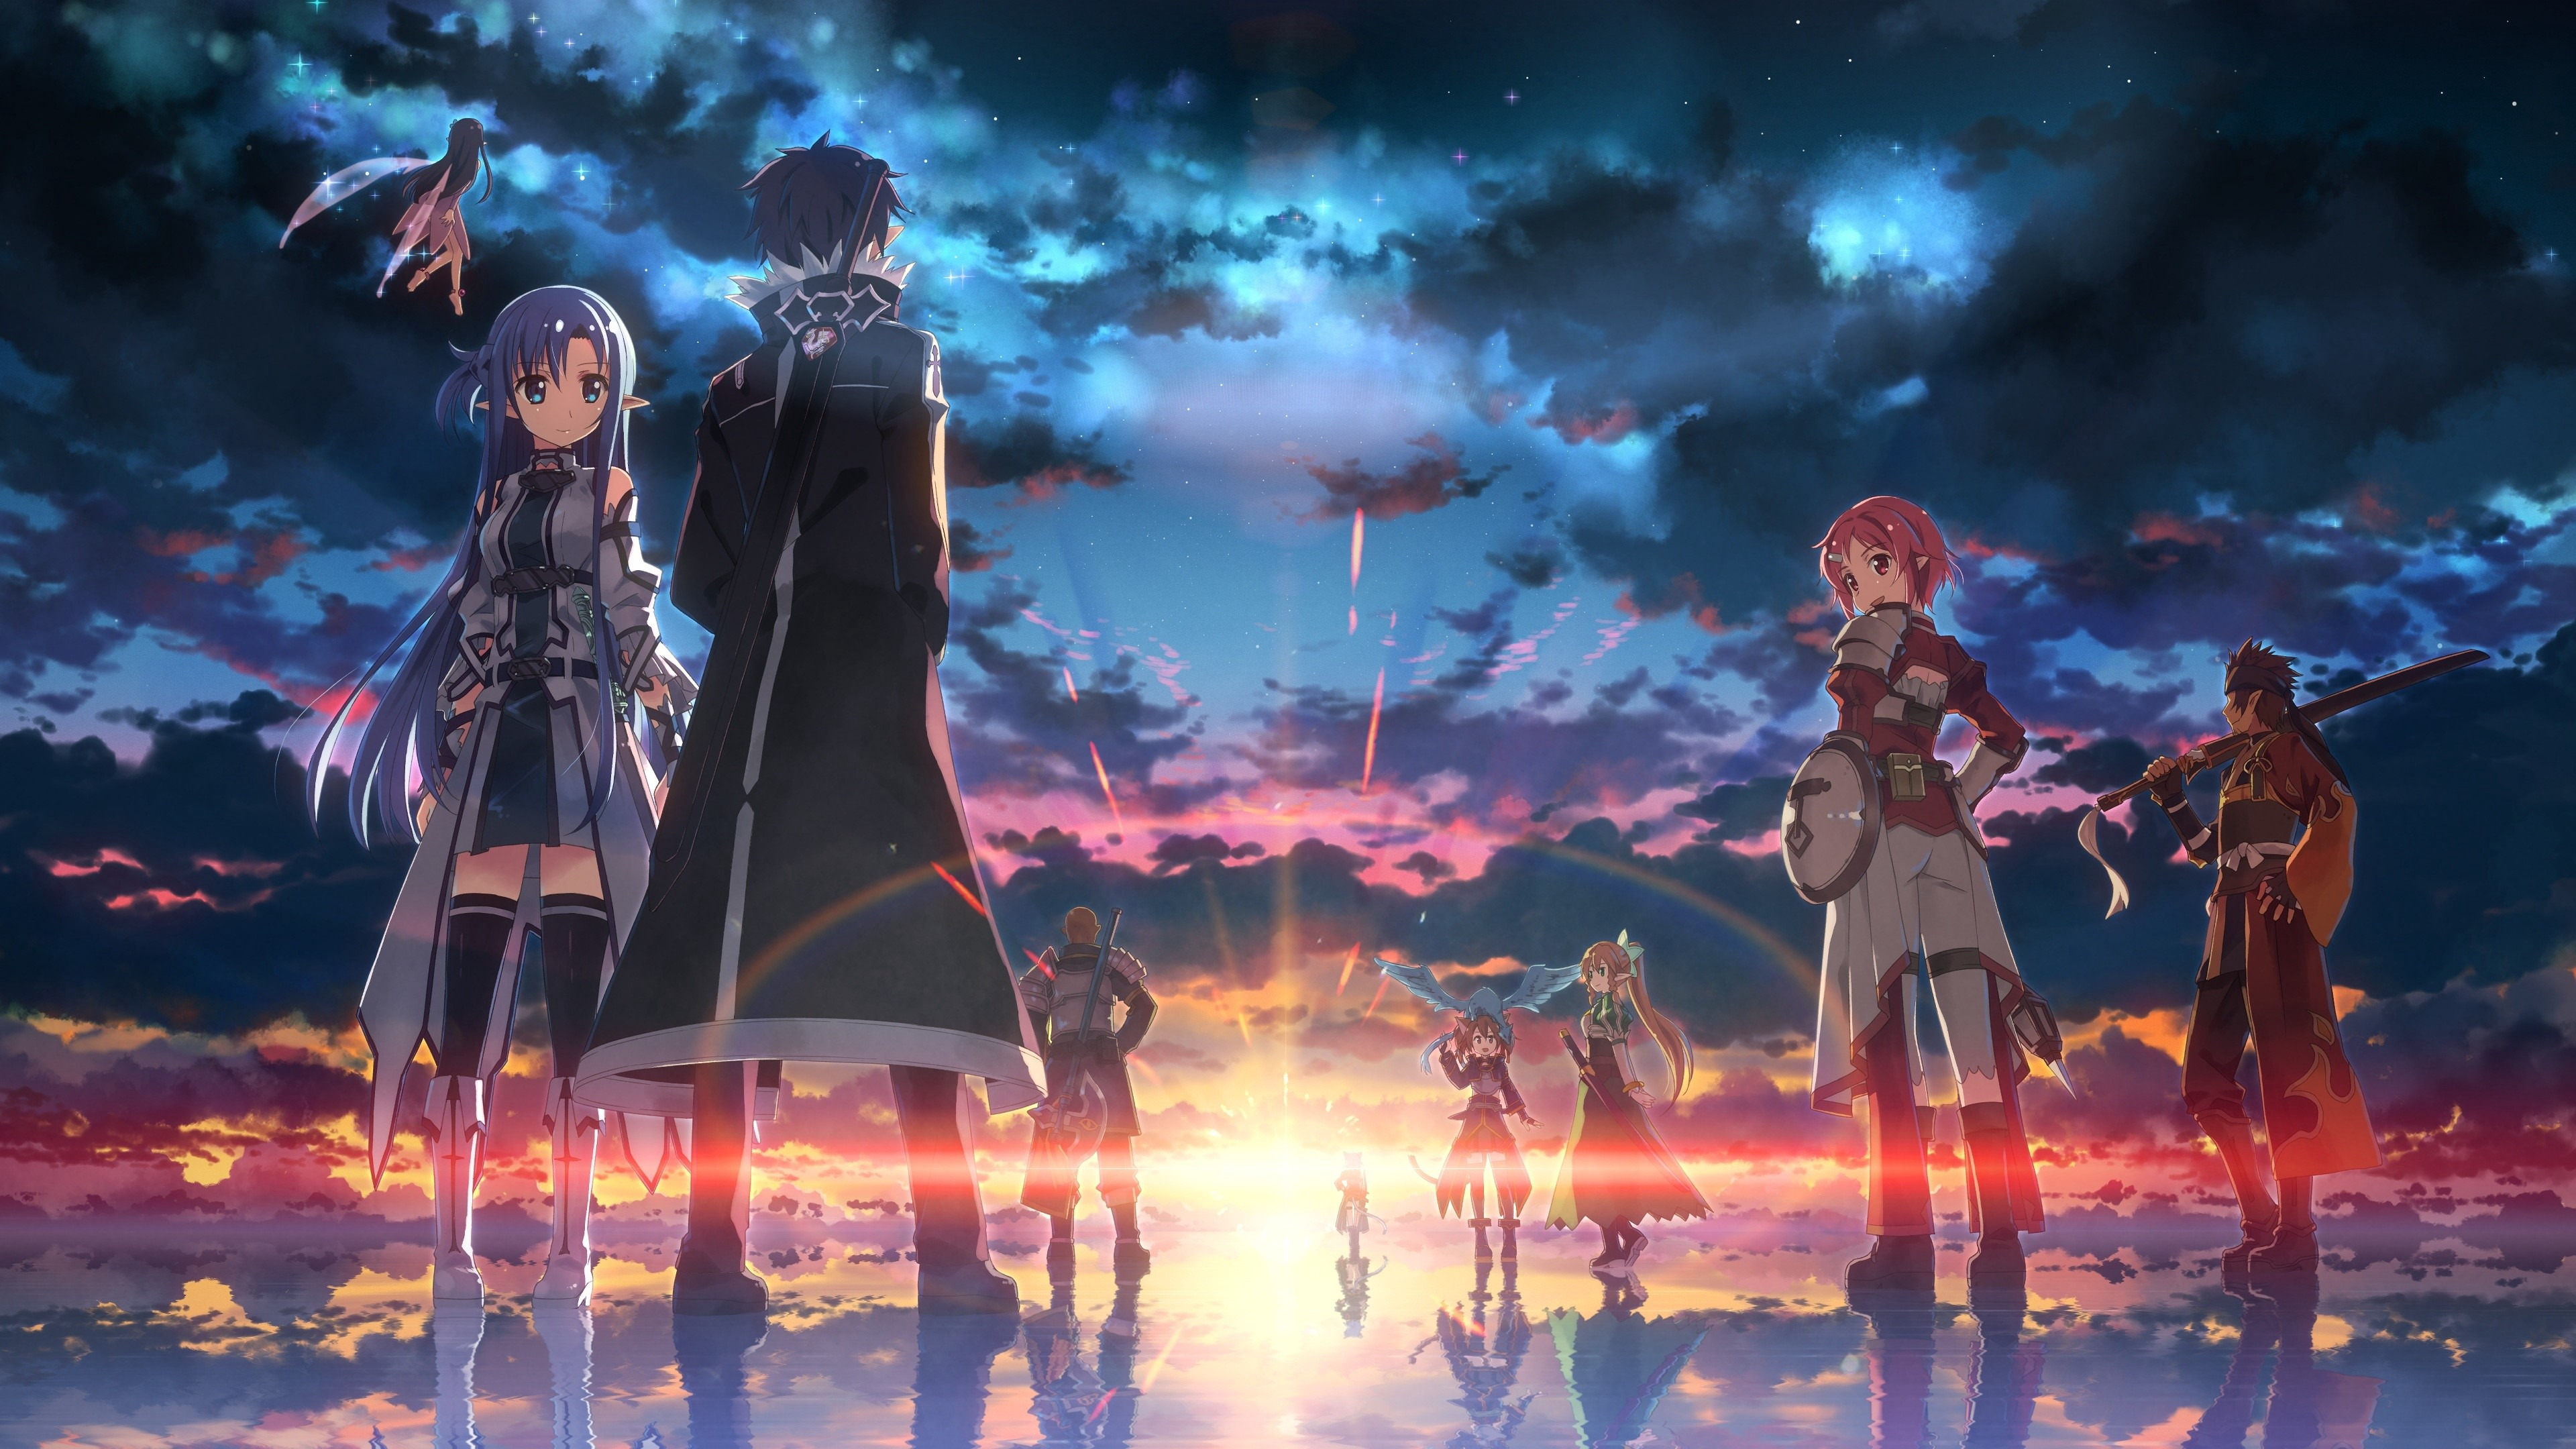 Sword Art Online Wallpapers Wallpapertag